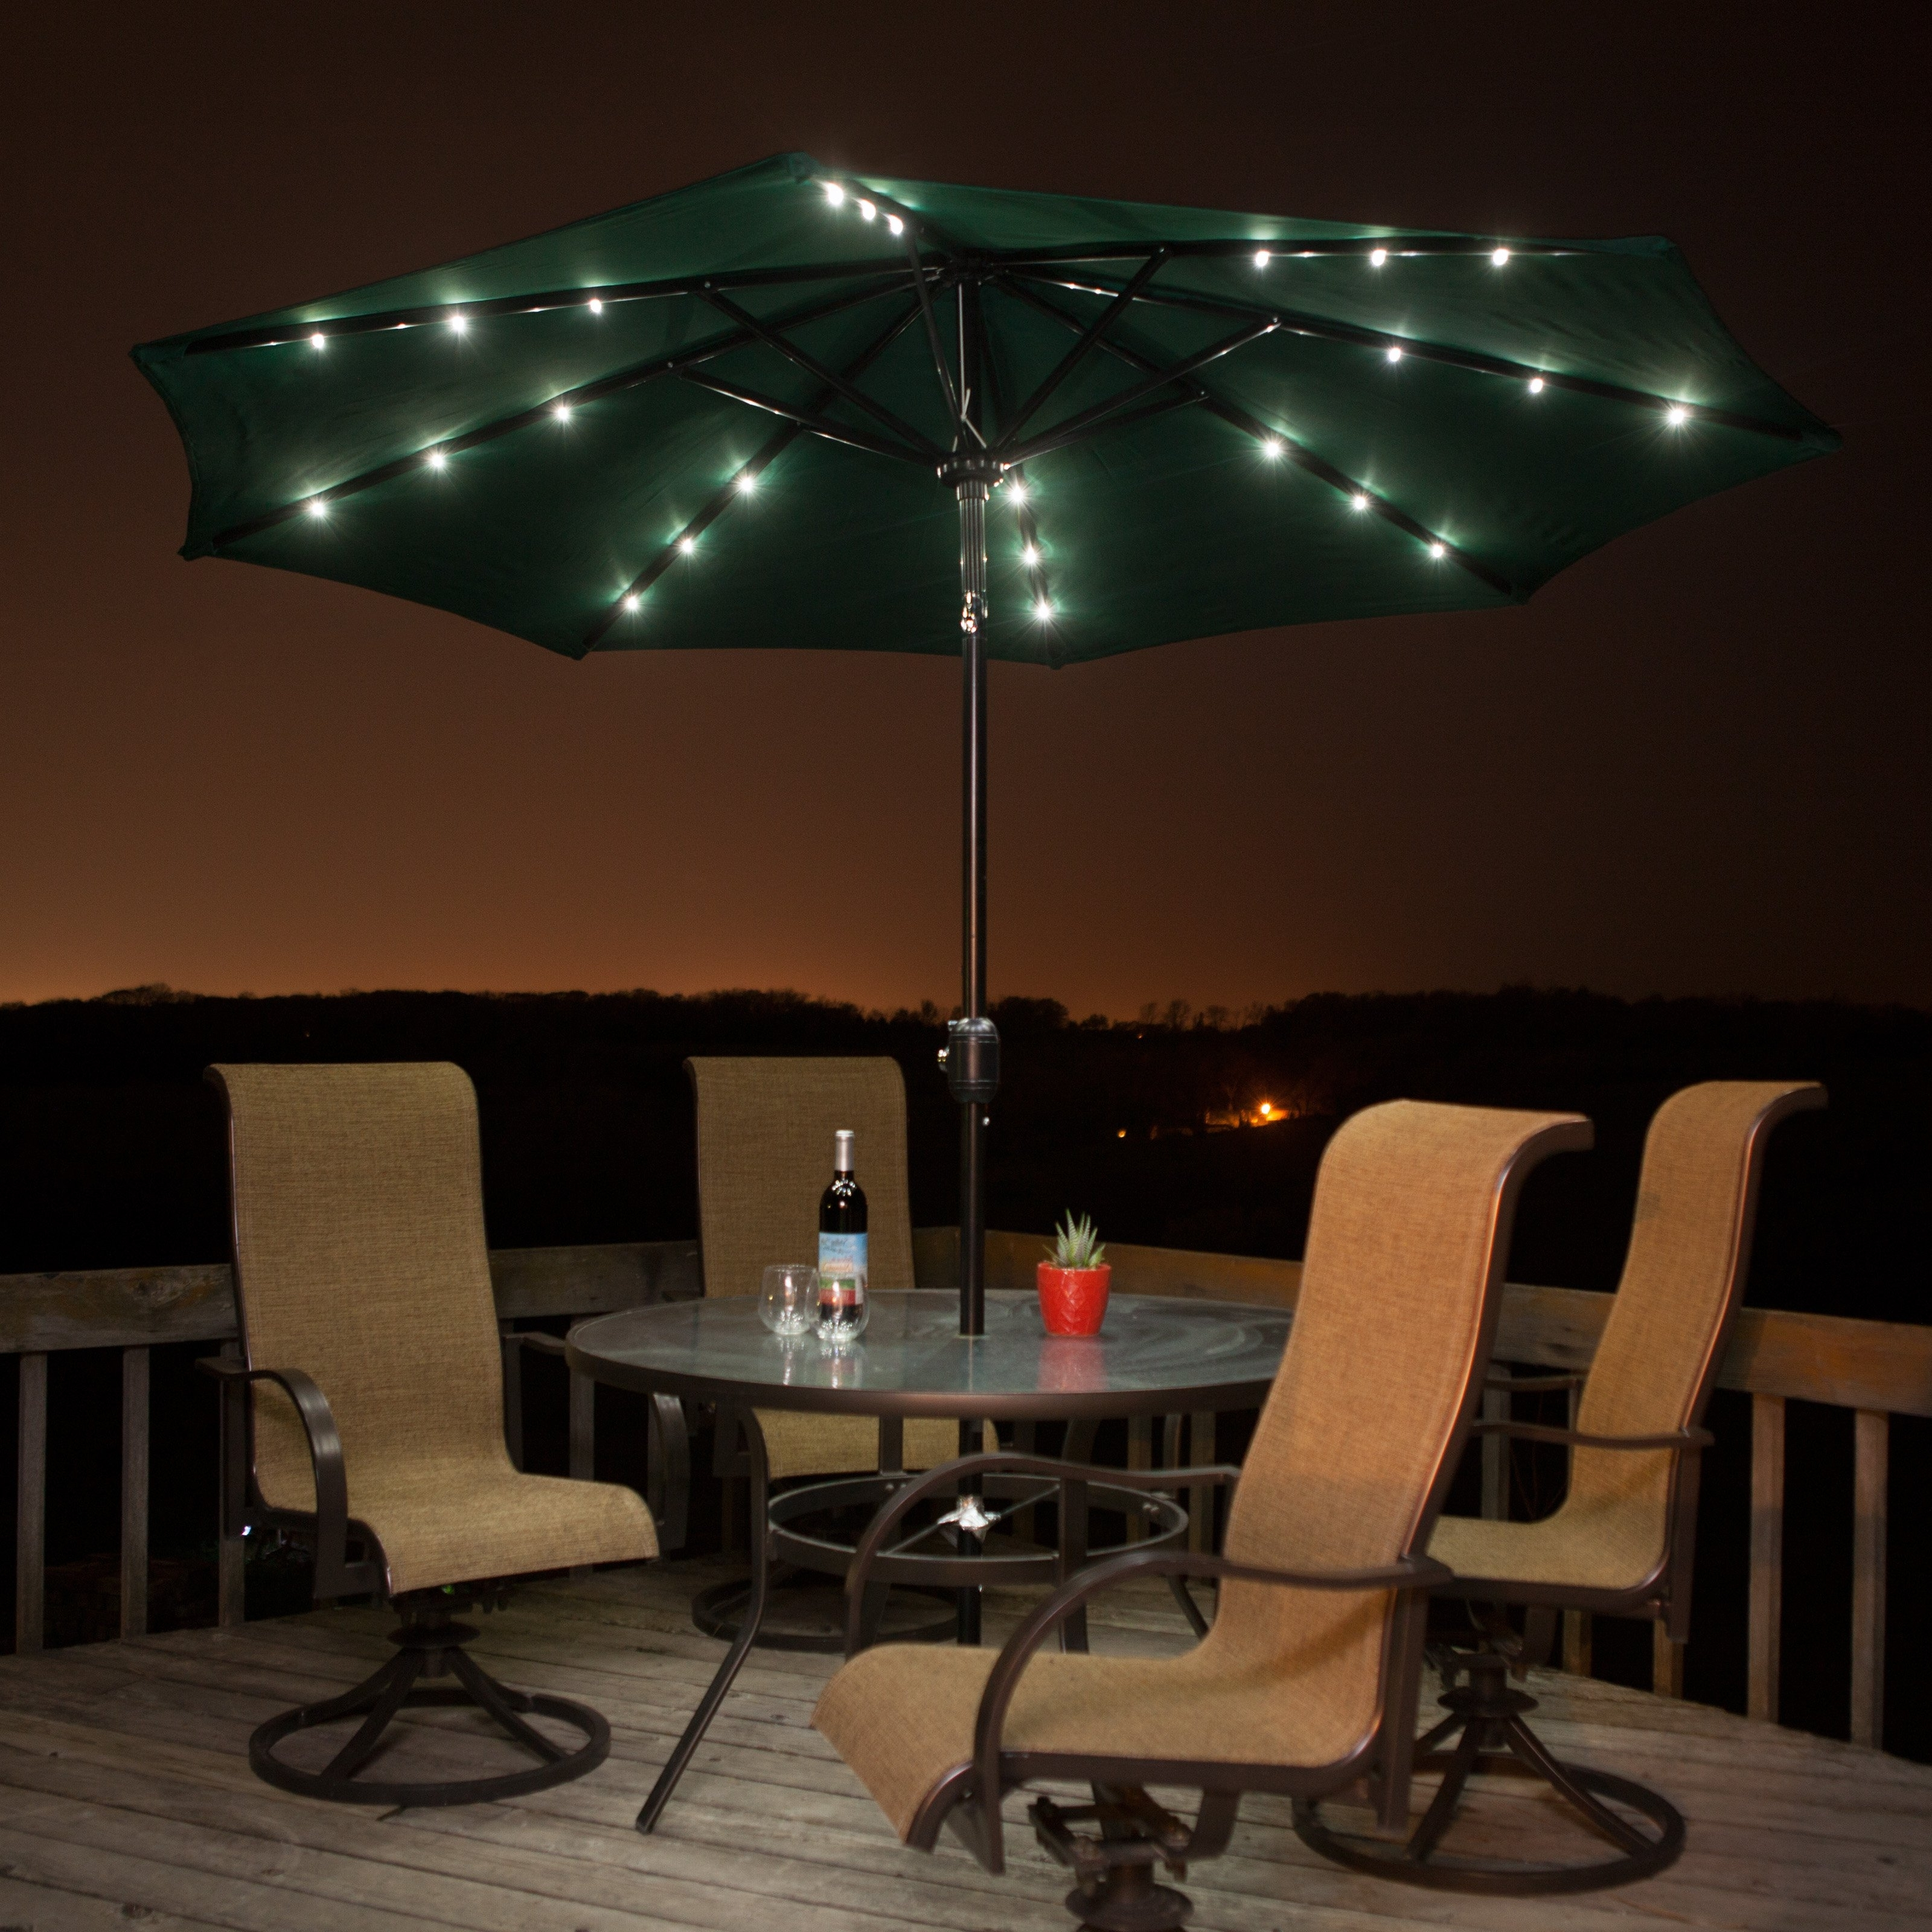 Lighted Patio Umbrellas — Mistikcamping Home Design : Different Intended For Favorite Solar Powered Patio Umbrellas (View 8 of 20)